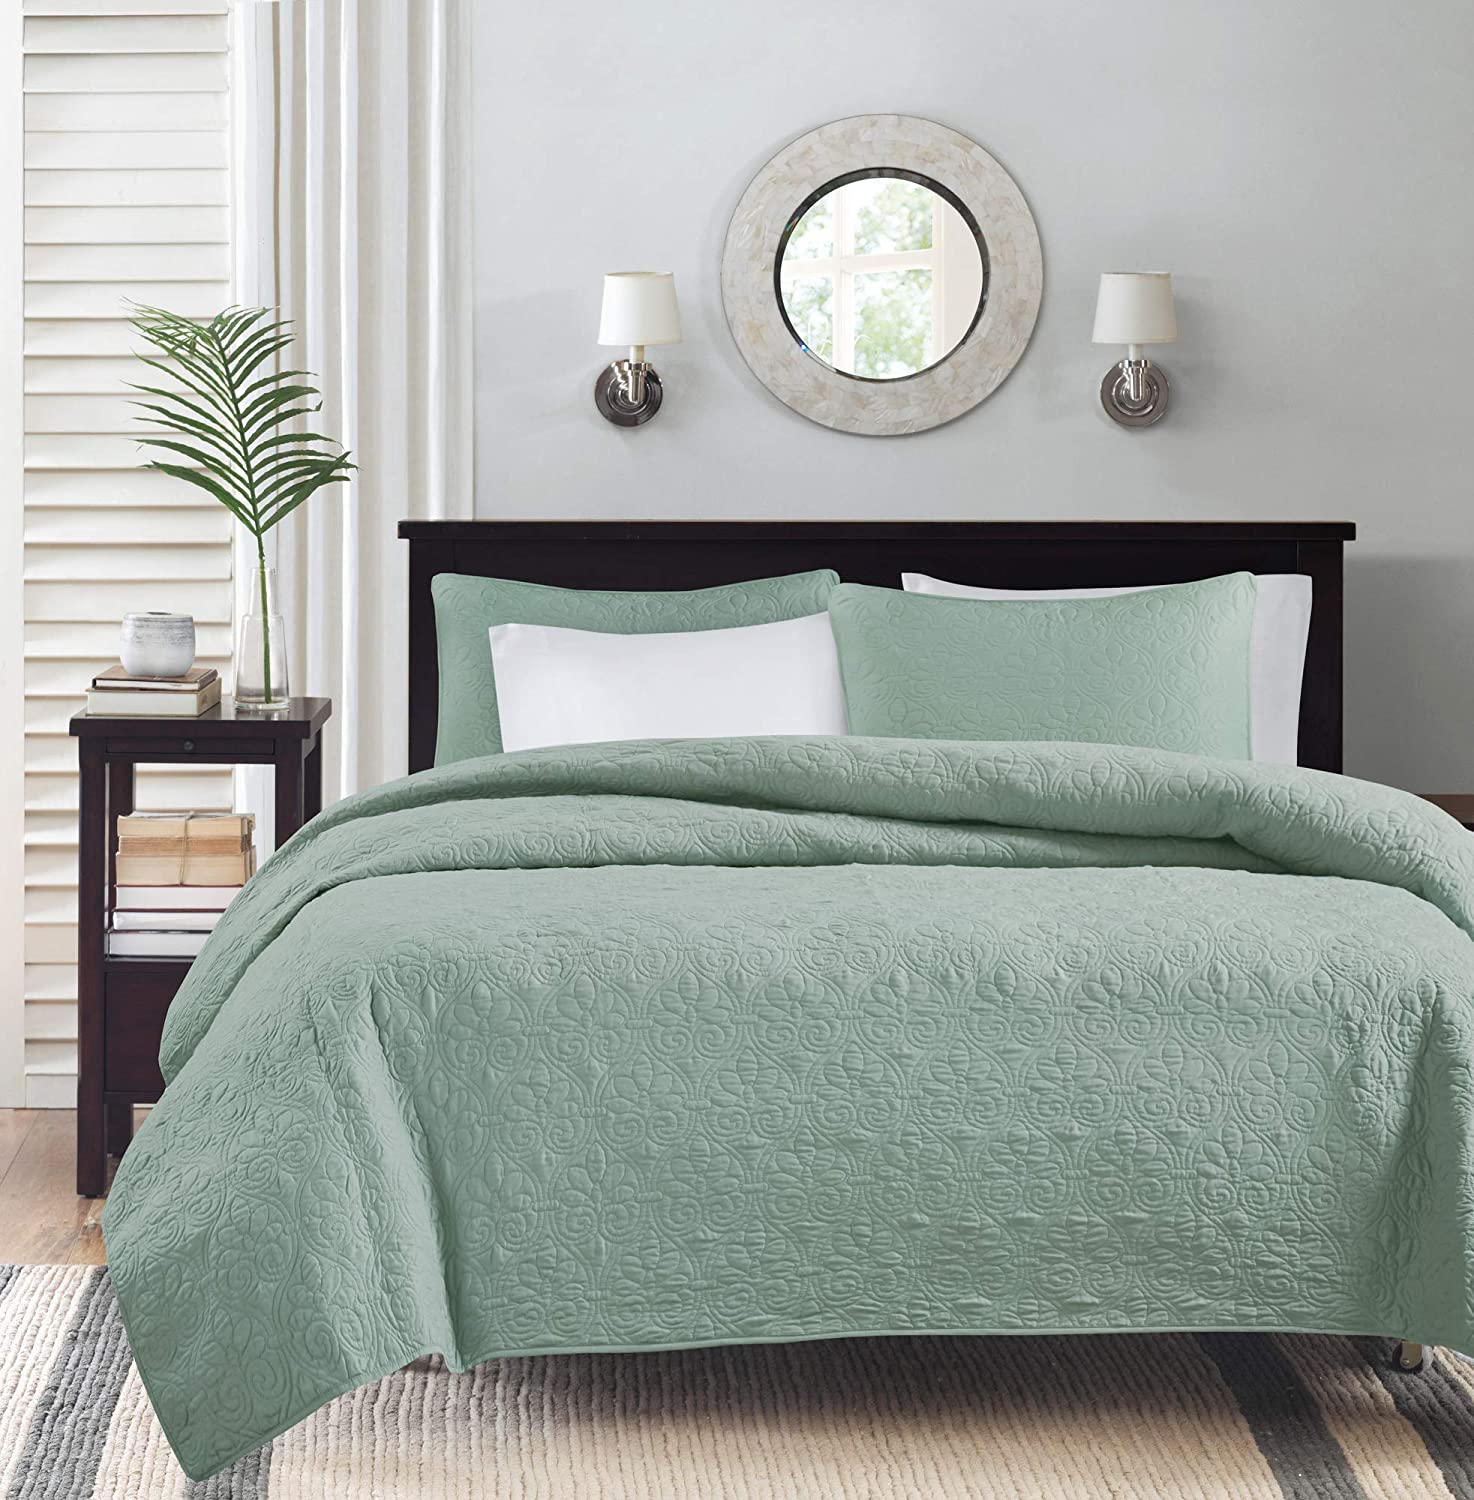 Madison Park Quebec Dusty Pale Seafoam 3-Piece Quilted King Coverlet Set—For King or Cal King Bed –Ideal For Warm Climate Room Décor or Add-on For Extra Warmth